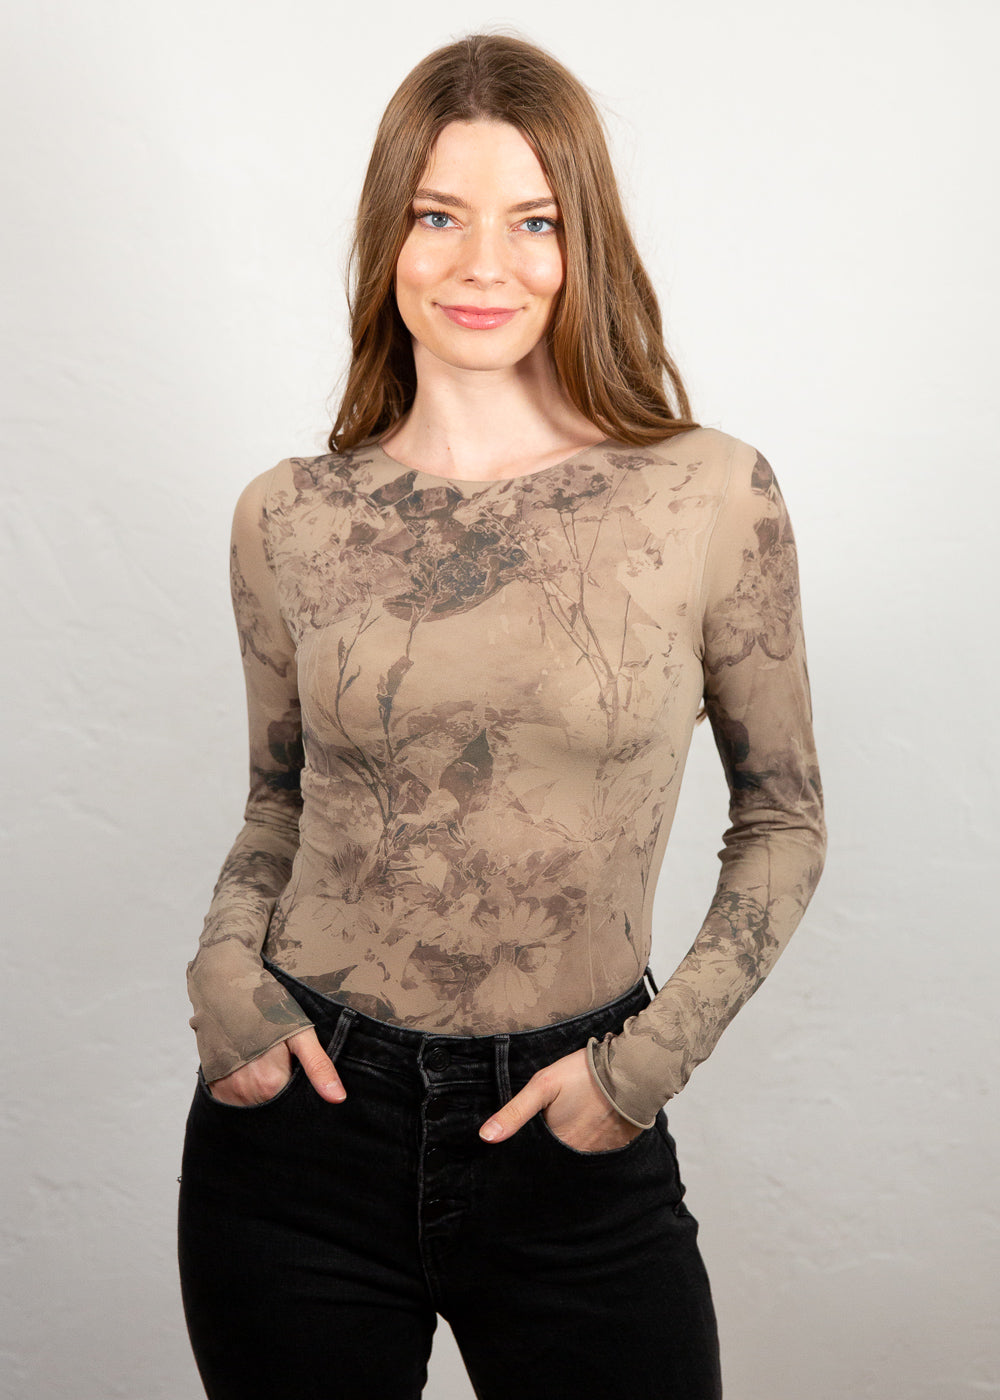 Antique Flora Raw Edge Second Skin Top